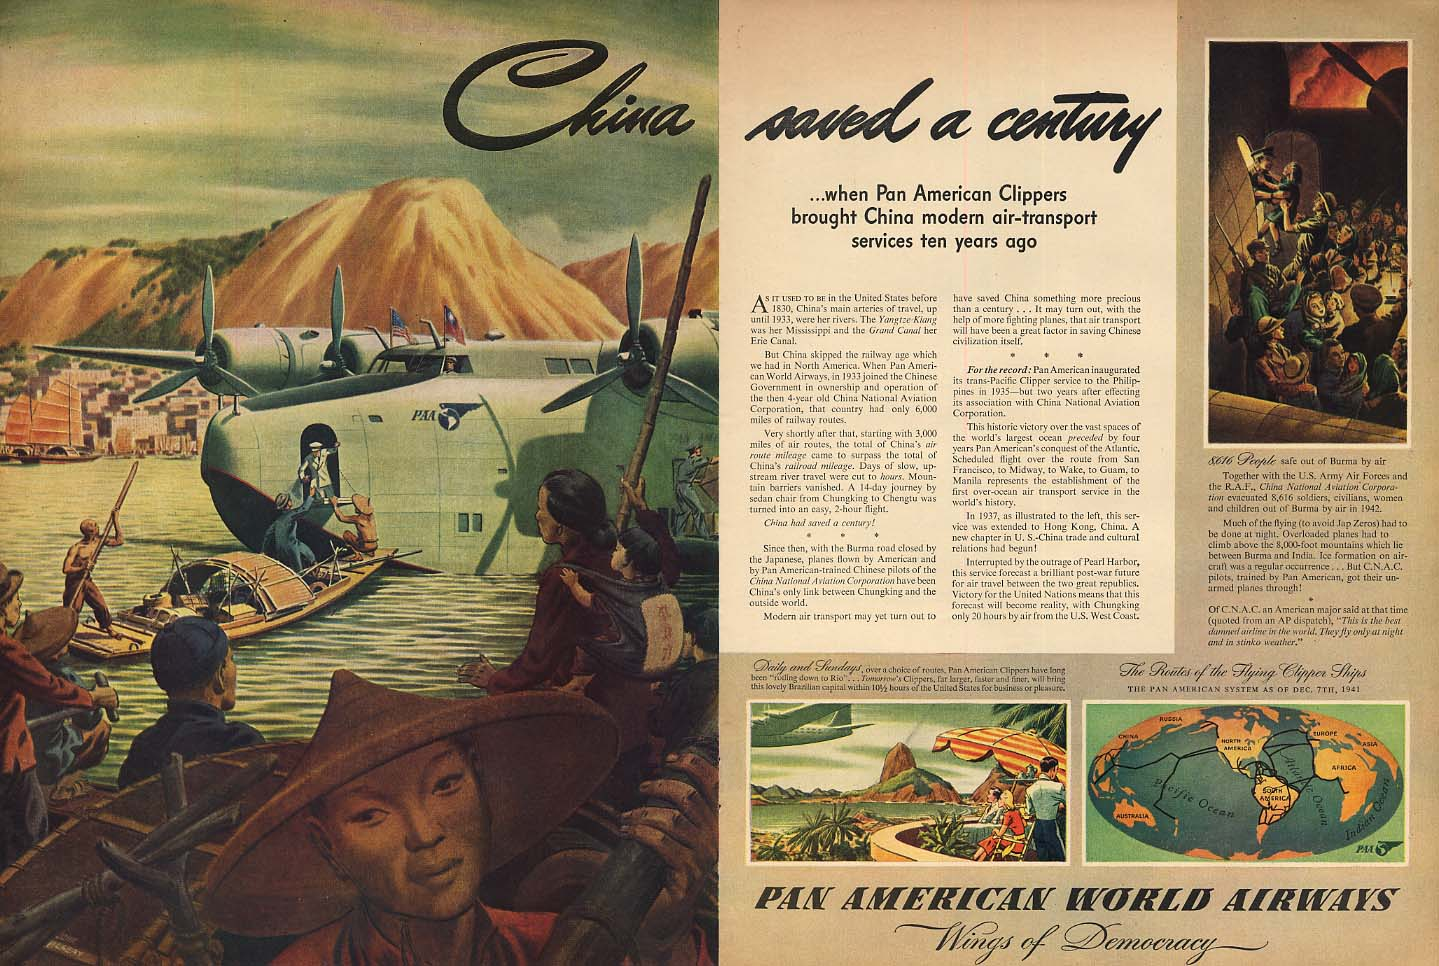 China saved a century - Pan American World Airways China Clipper ad 1943 L